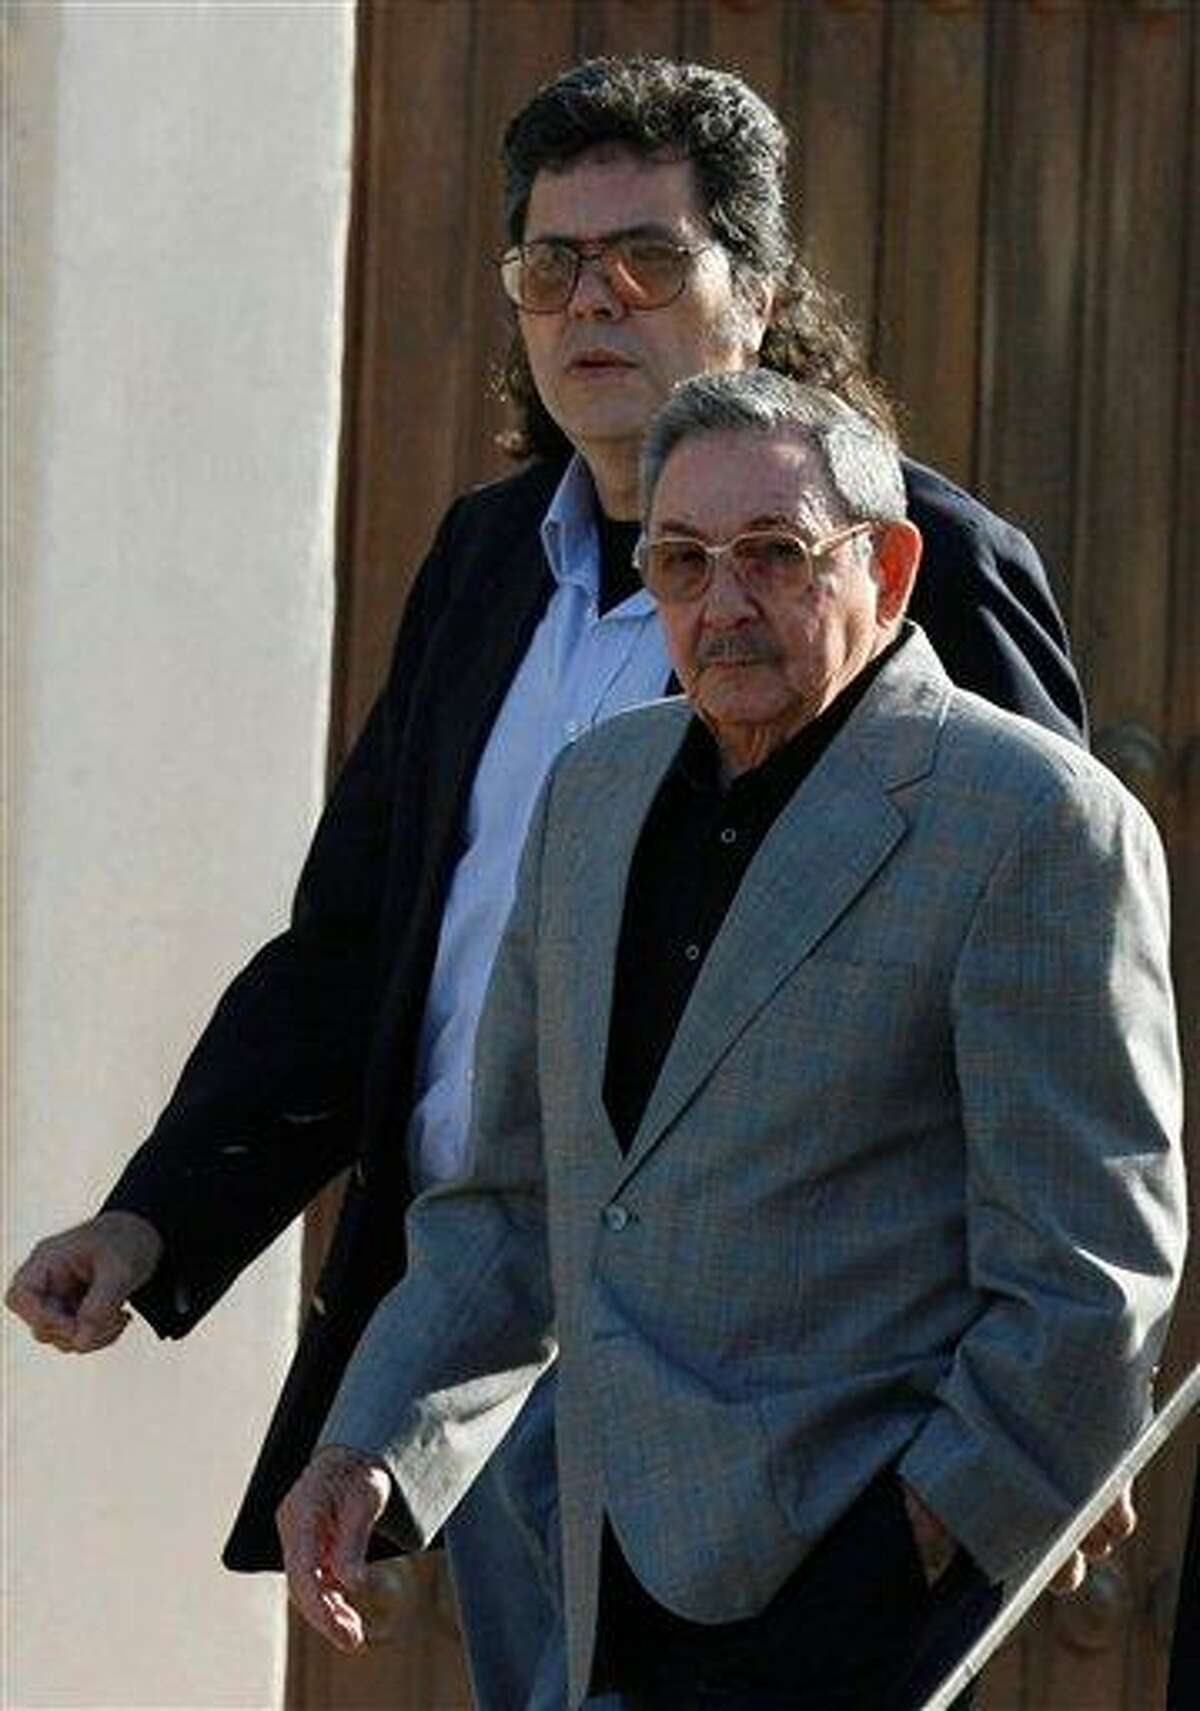 In this 2008 file photo, Cuba's President Raul Castro, right, and Minister of Culture Abel Prieto arrive at the opening ceremony of the International Book Fair in Havana, Cuba. Associated Press